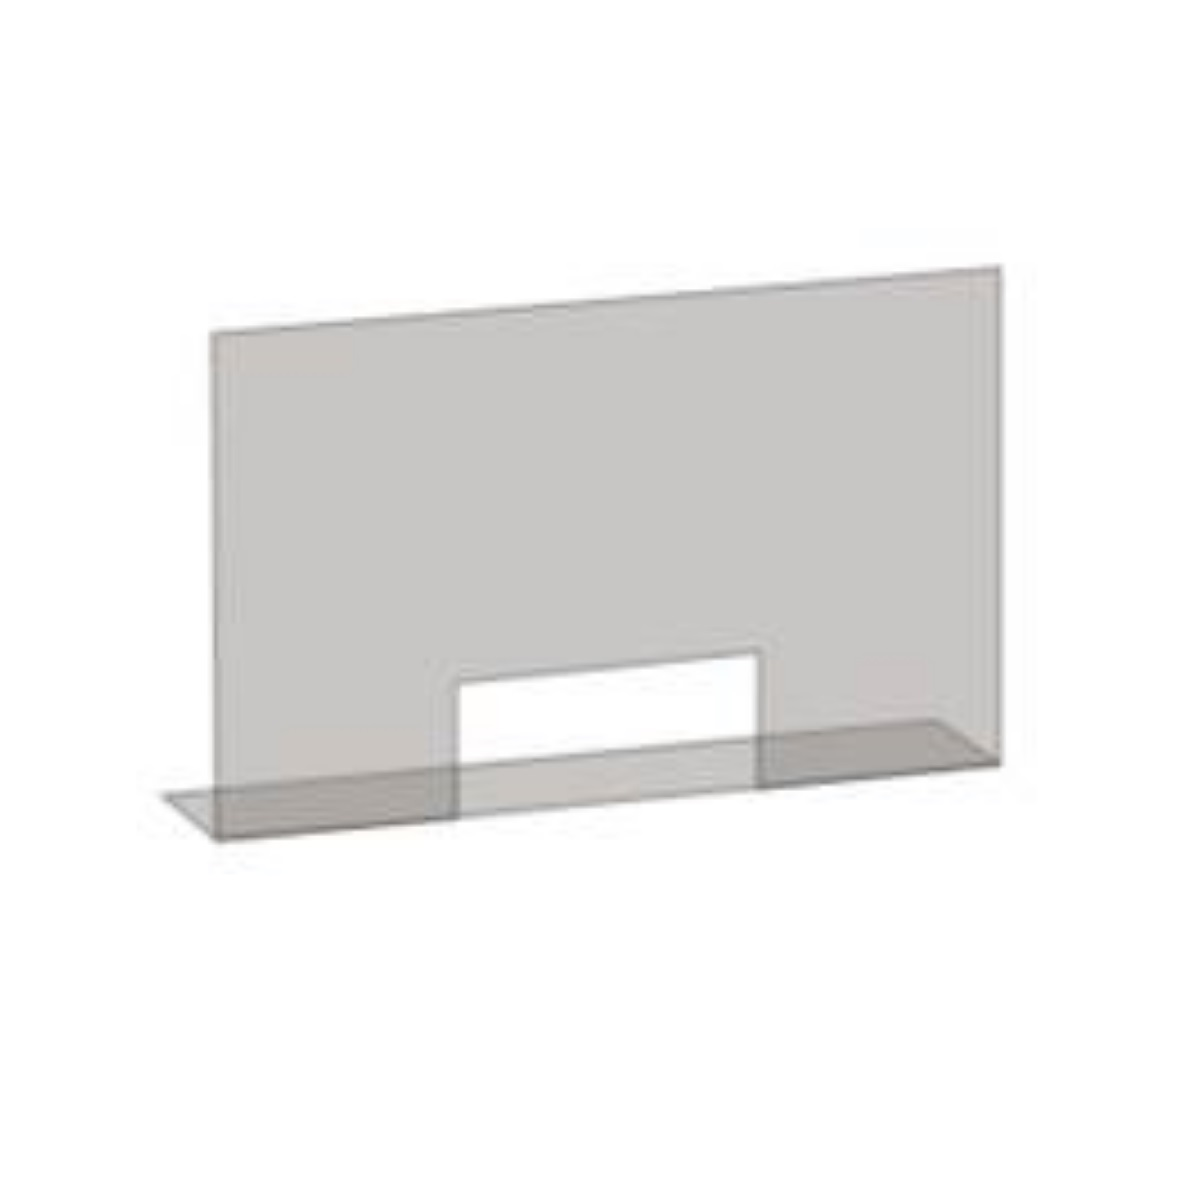 A clear acrylic screen with cut out hatch for exchanges on a white background